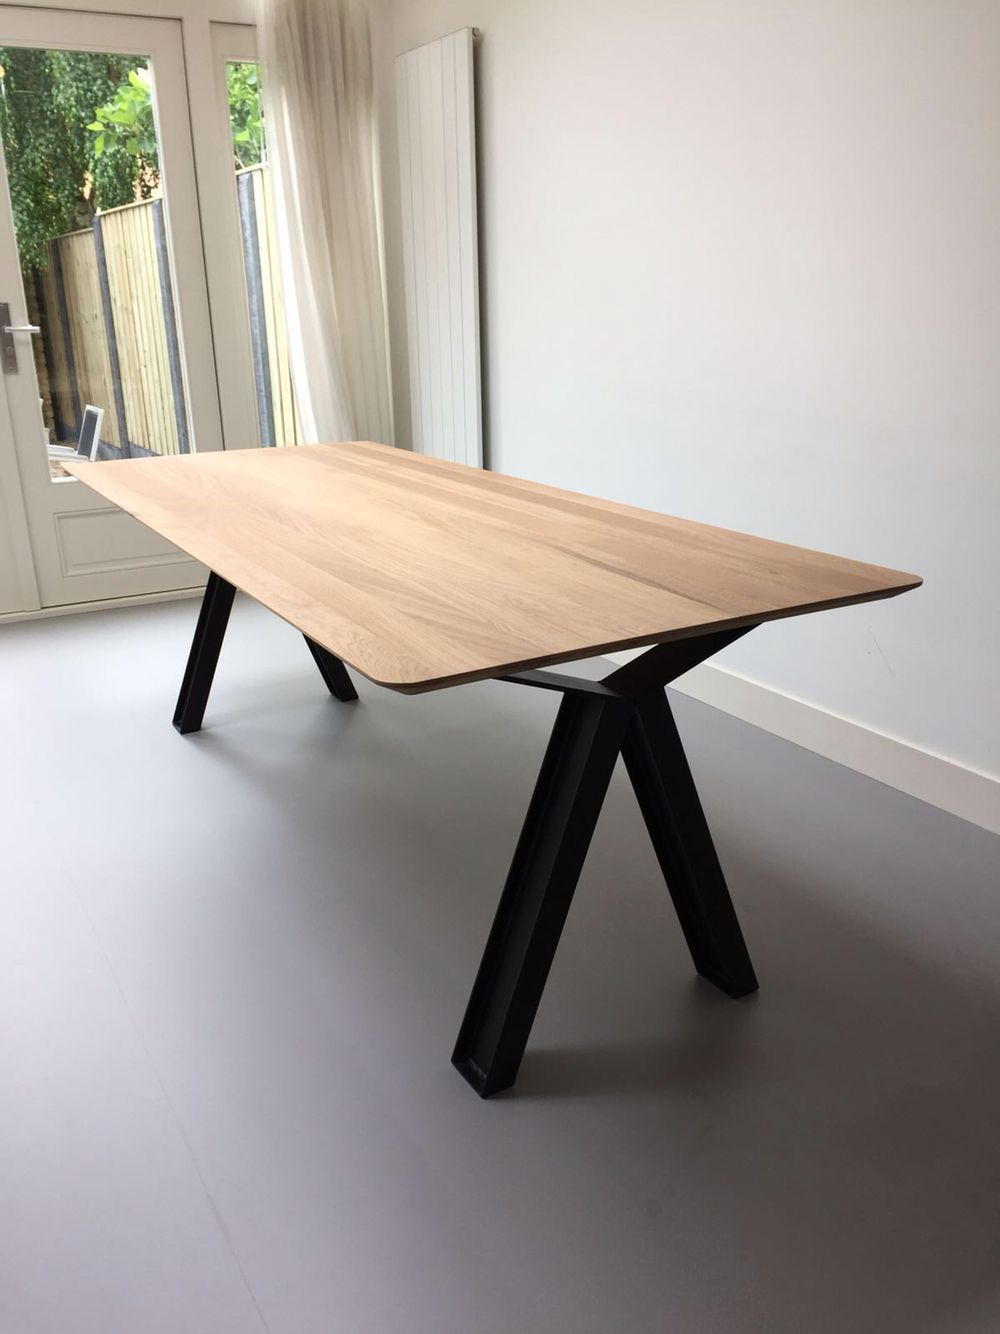 Pin By Xander Albers On Dining Tables